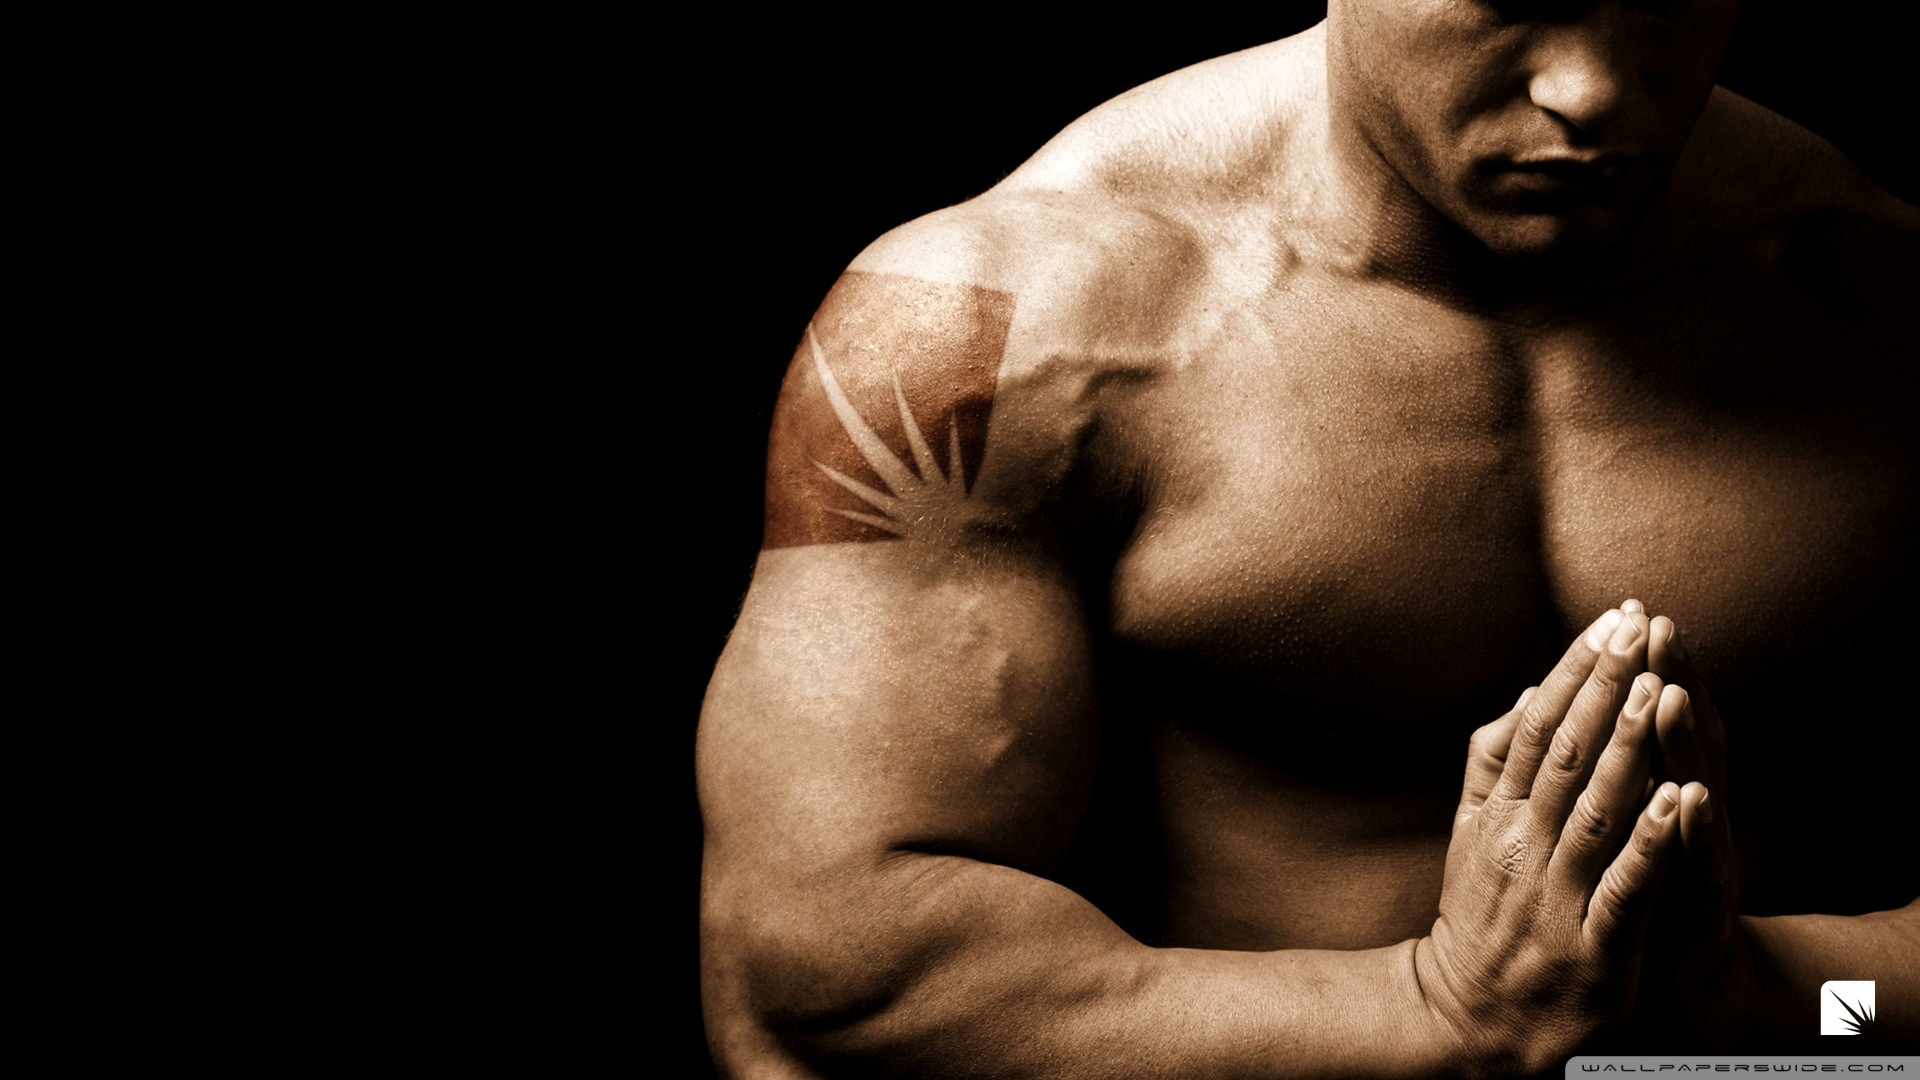 High Resolution Bodybuilding Wallpapers